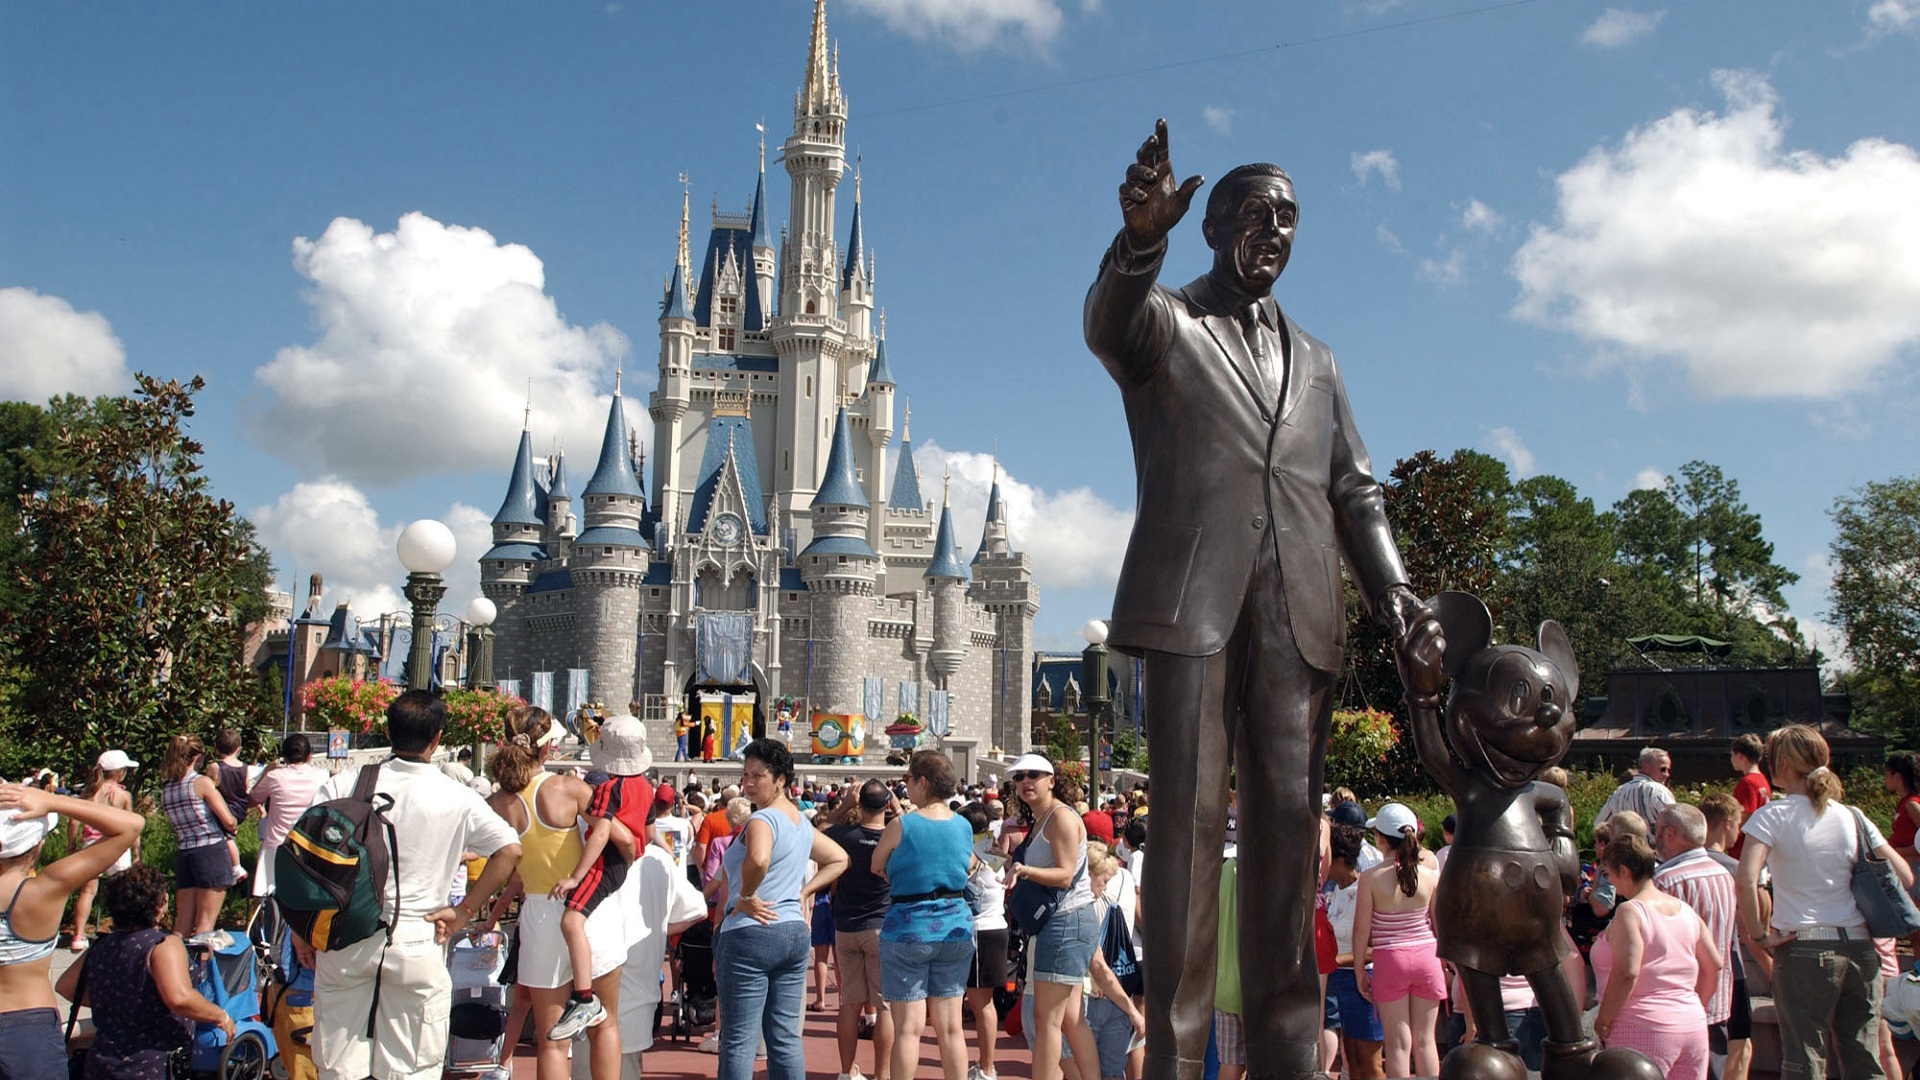 DISNEY WORLD MAGIC KINGDOM-846652698